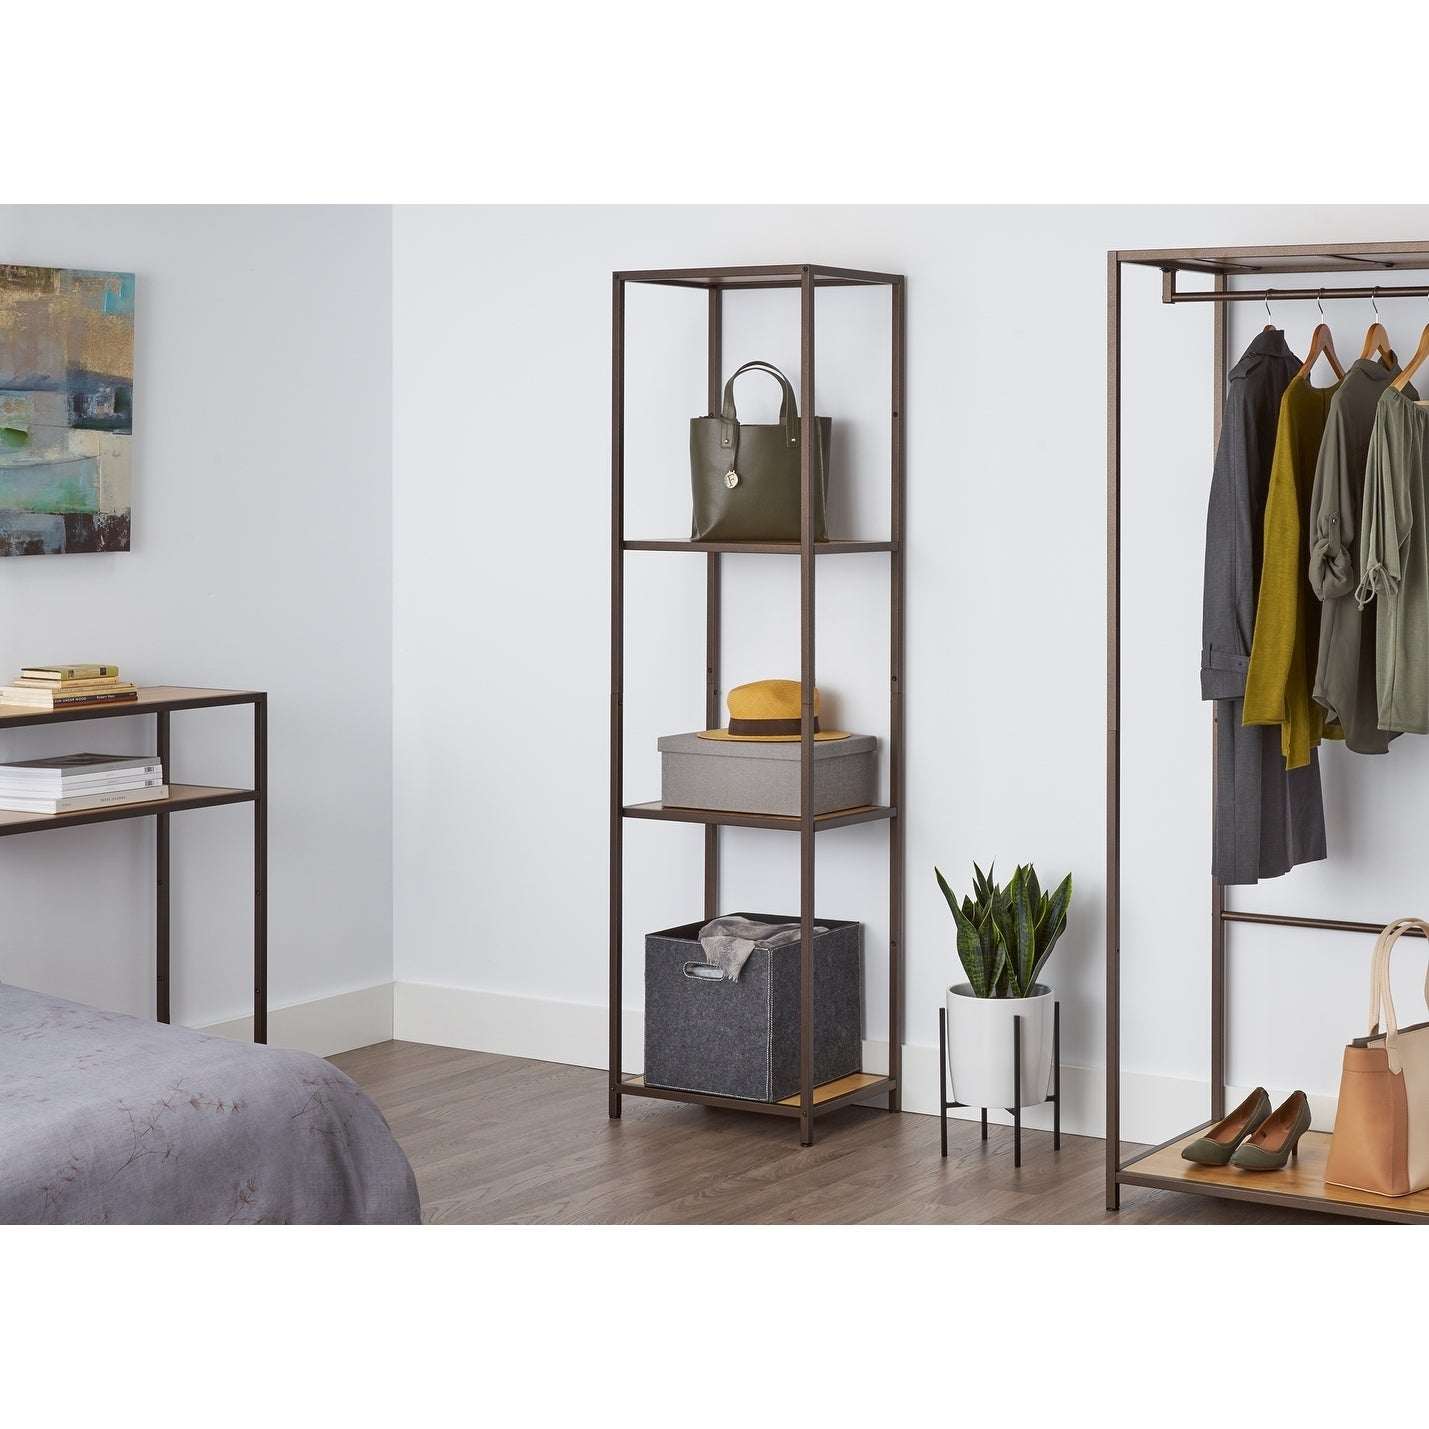 TRINITY 4-Tier Bamboo Shelving Tower - Bronze Anthracite (15 x 20 x 72 Bronze Anthracite)